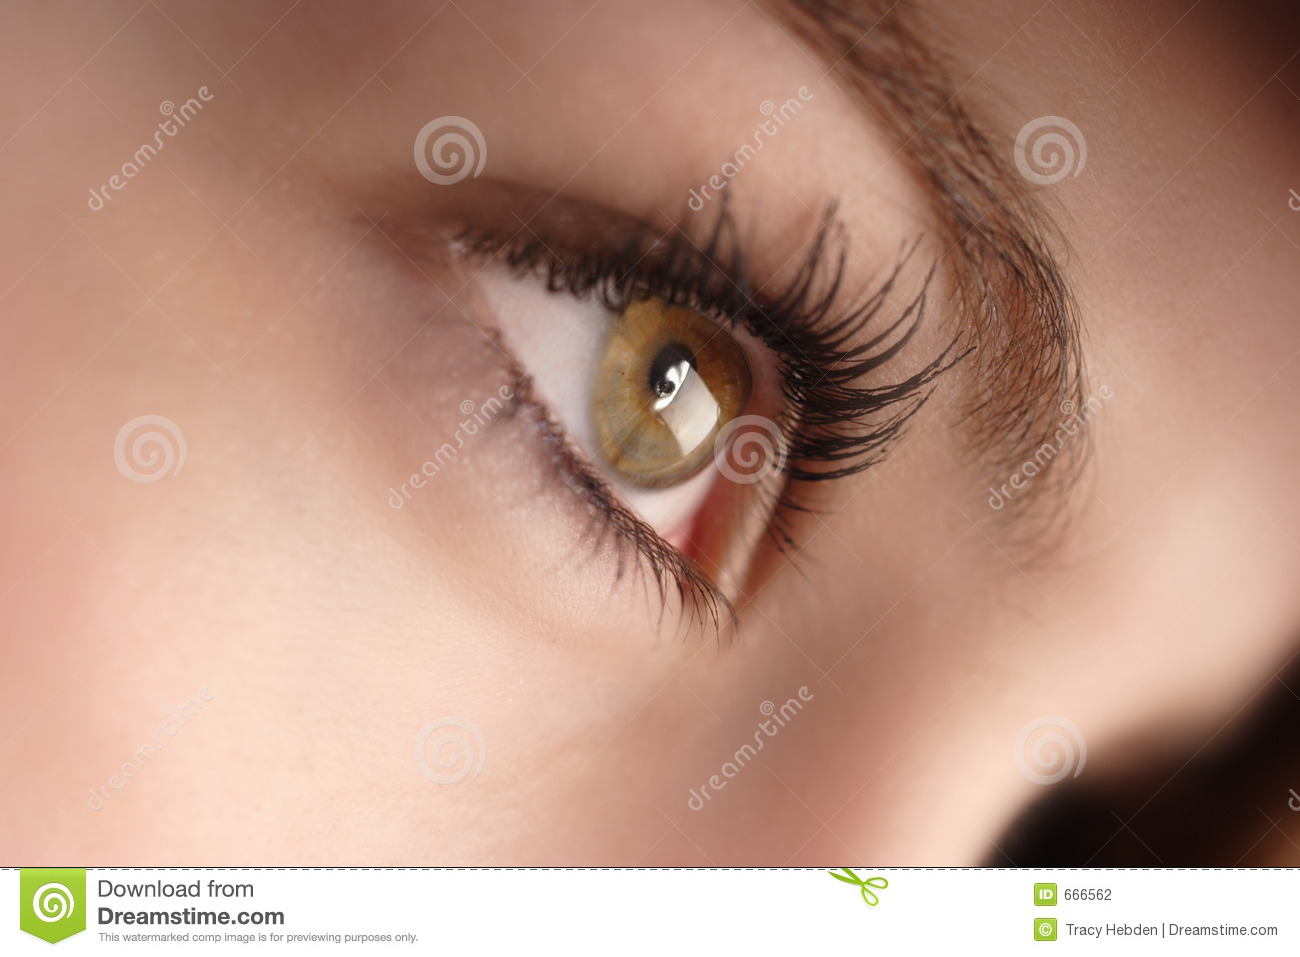 woman sitting in chair kaleigh twin sleeper bed hazel eyes stock photography - image: 666562